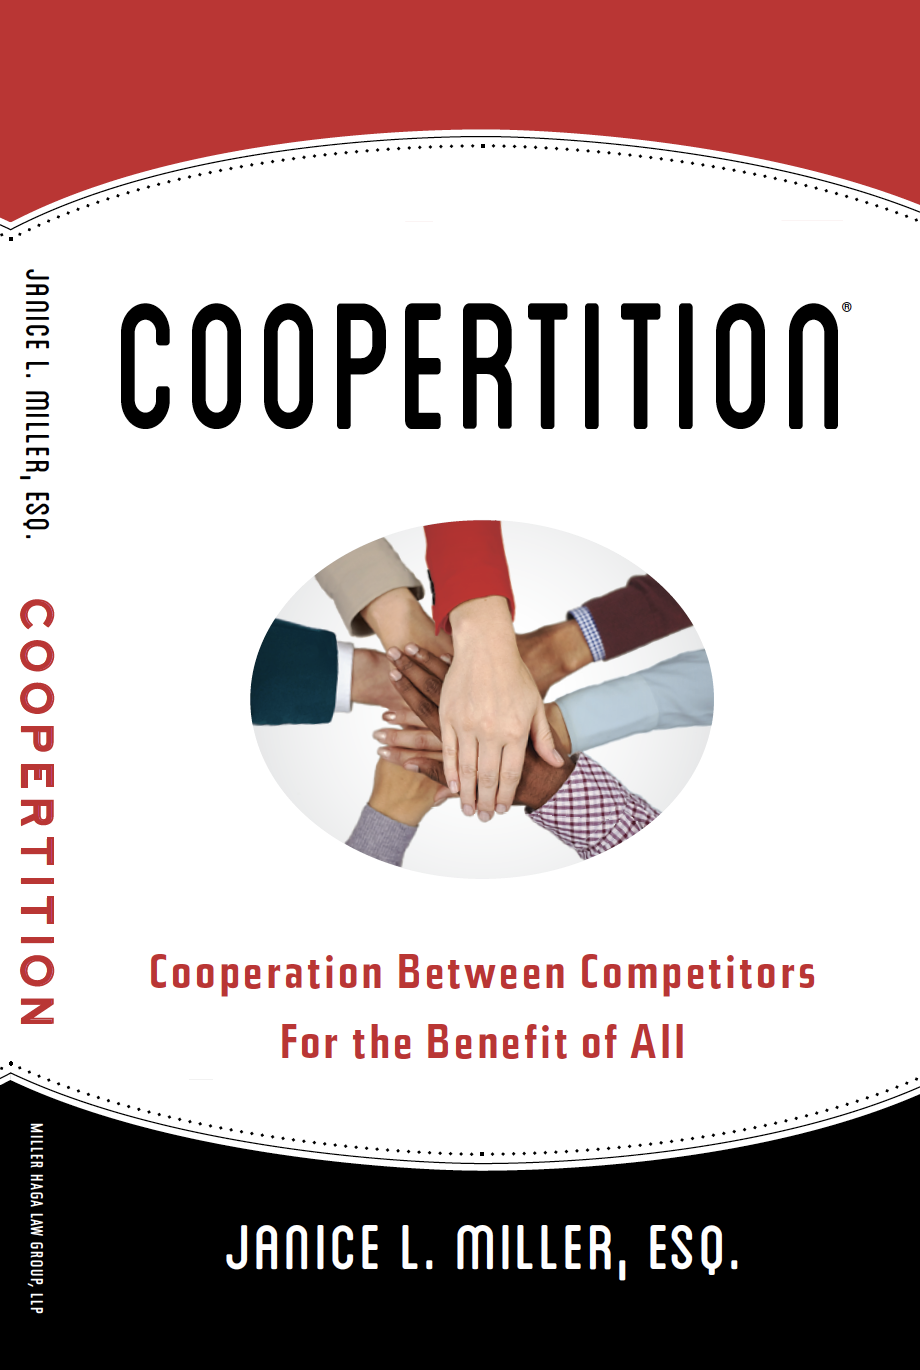 Coopertition Front Book Cover